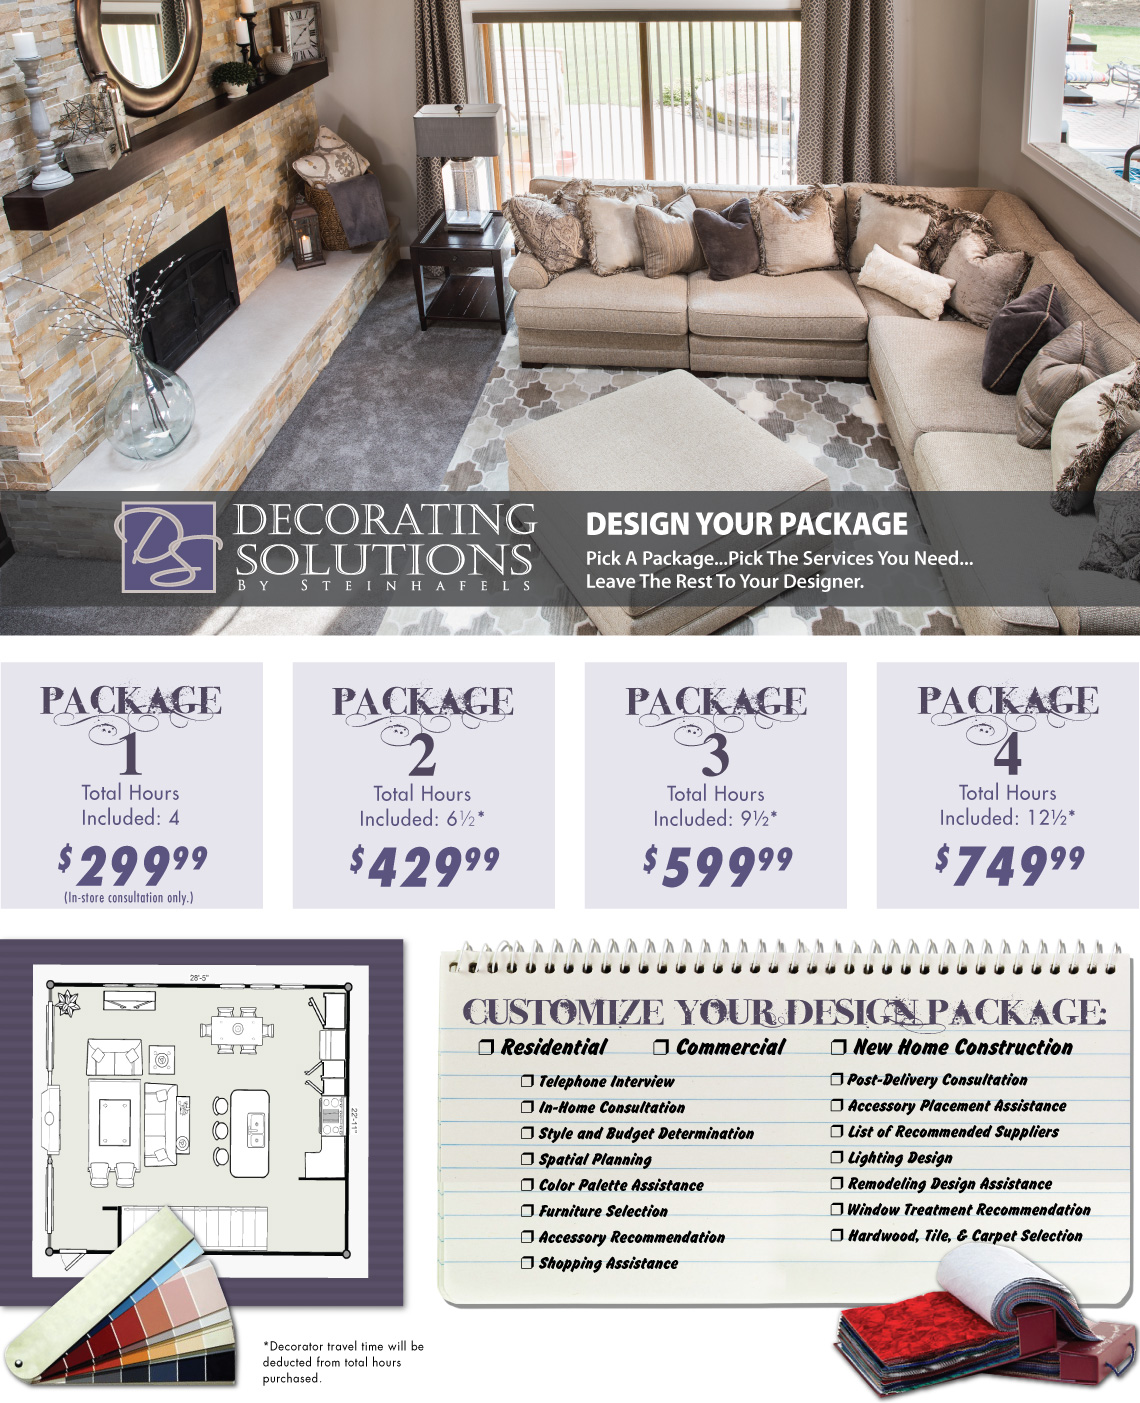 Decorating Solution Choose Your Package